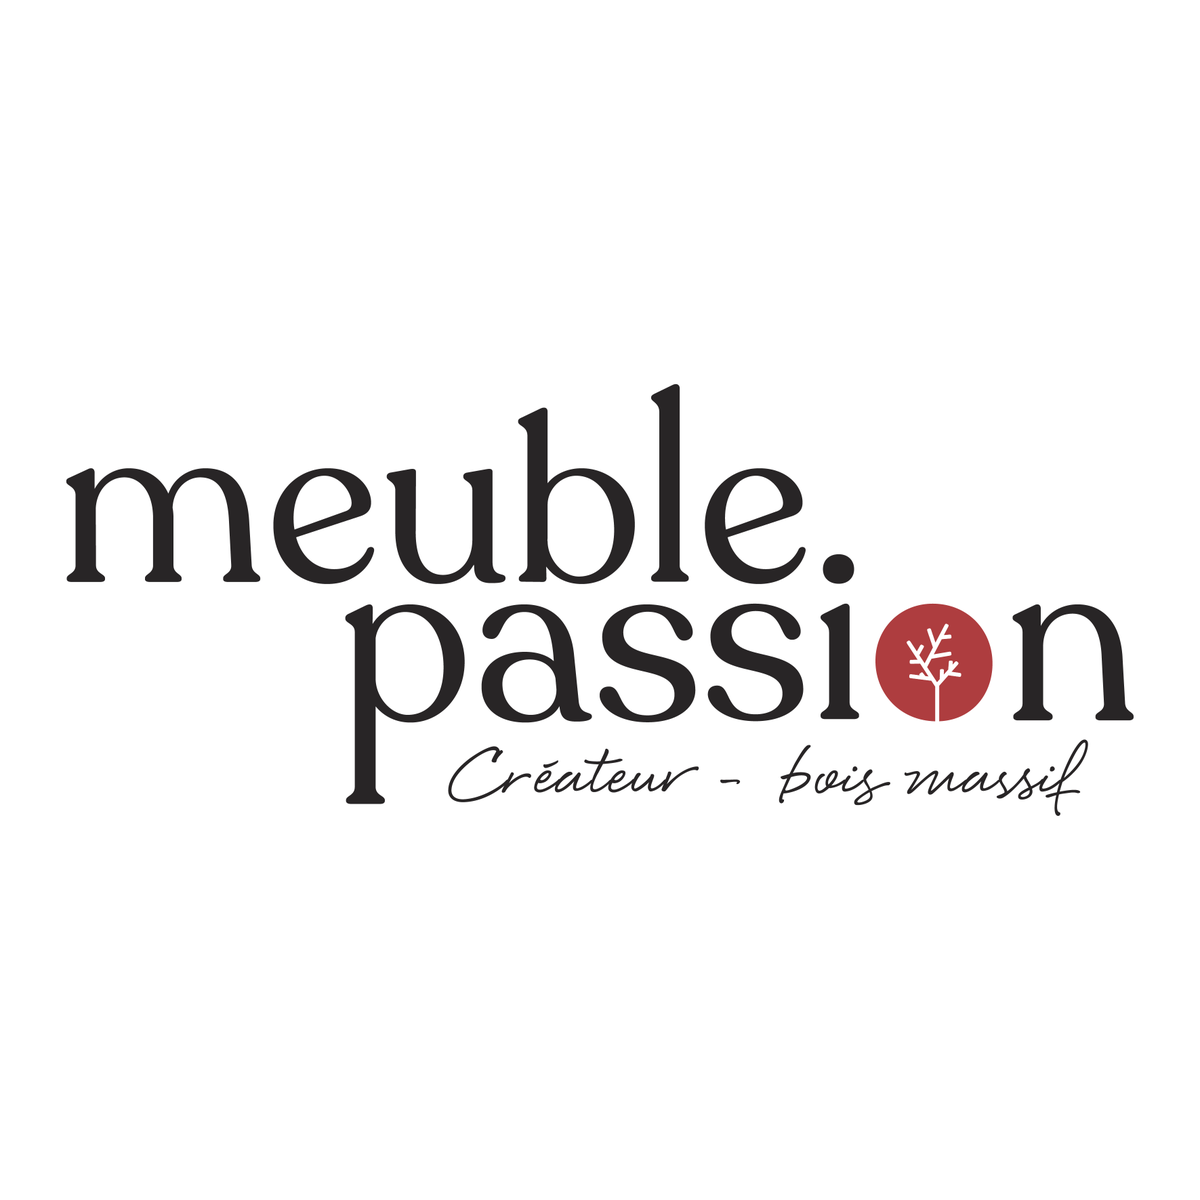 Meuble Modulable Salon Luxe Meuble Passion Meuble Passion Of 28 Beau Meuble Modulable Salon